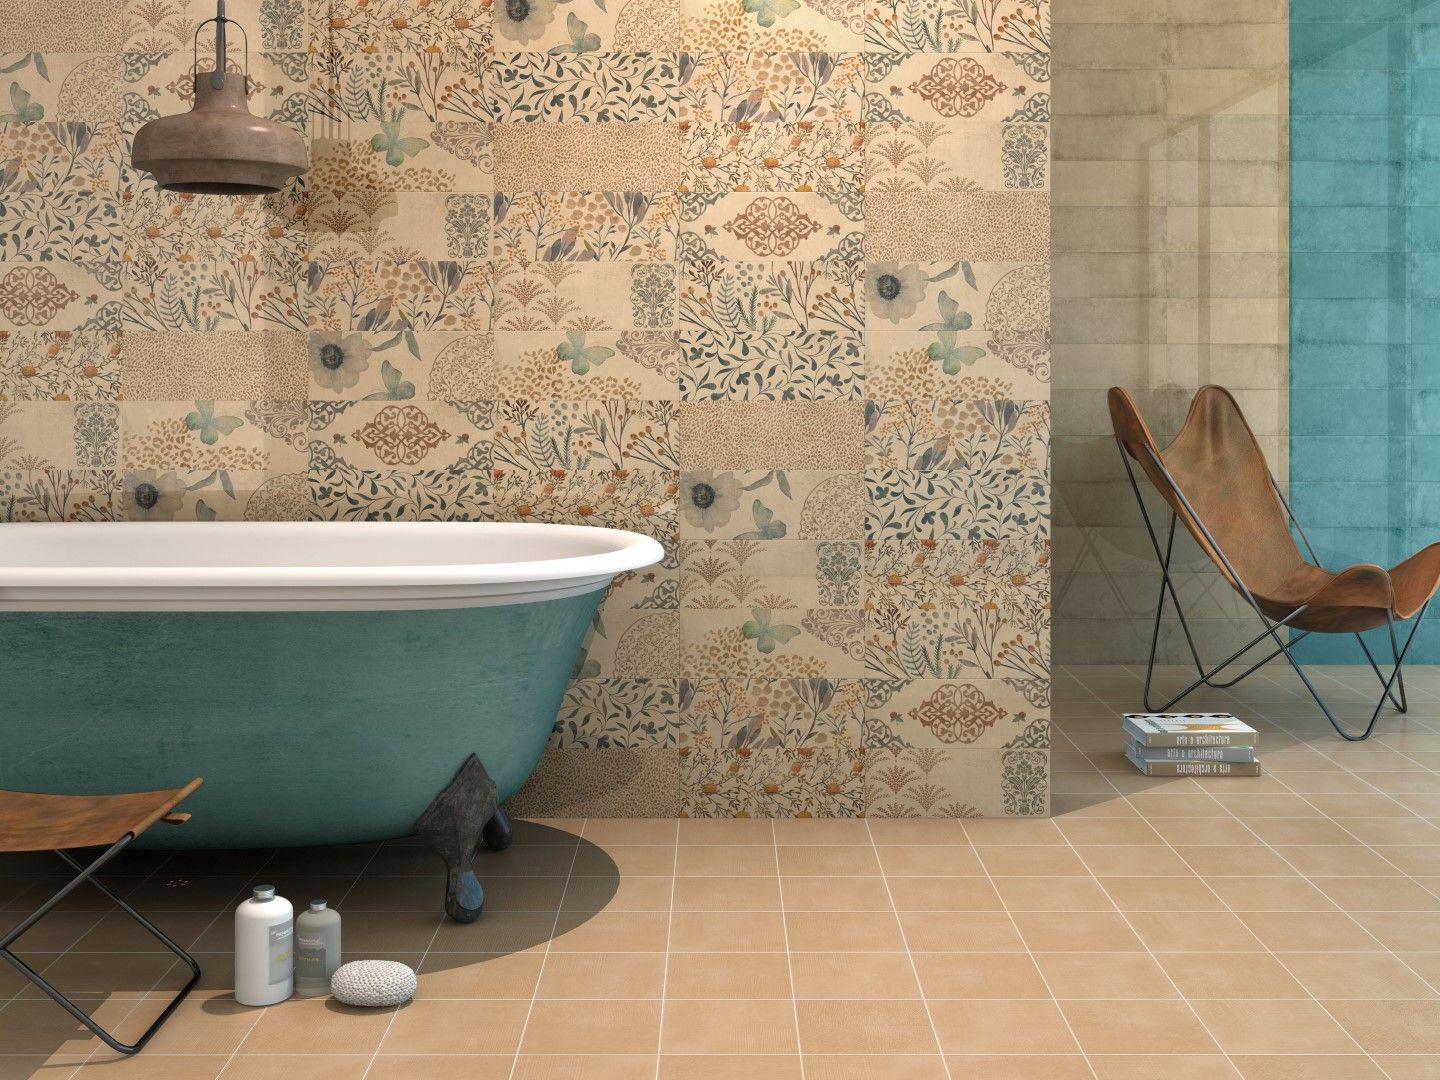 Top ceramic tile manufacturers columbialabelsfo spainu0027s top ceramic tile manufacturers tileofspain including dailygadgetfo Image collections